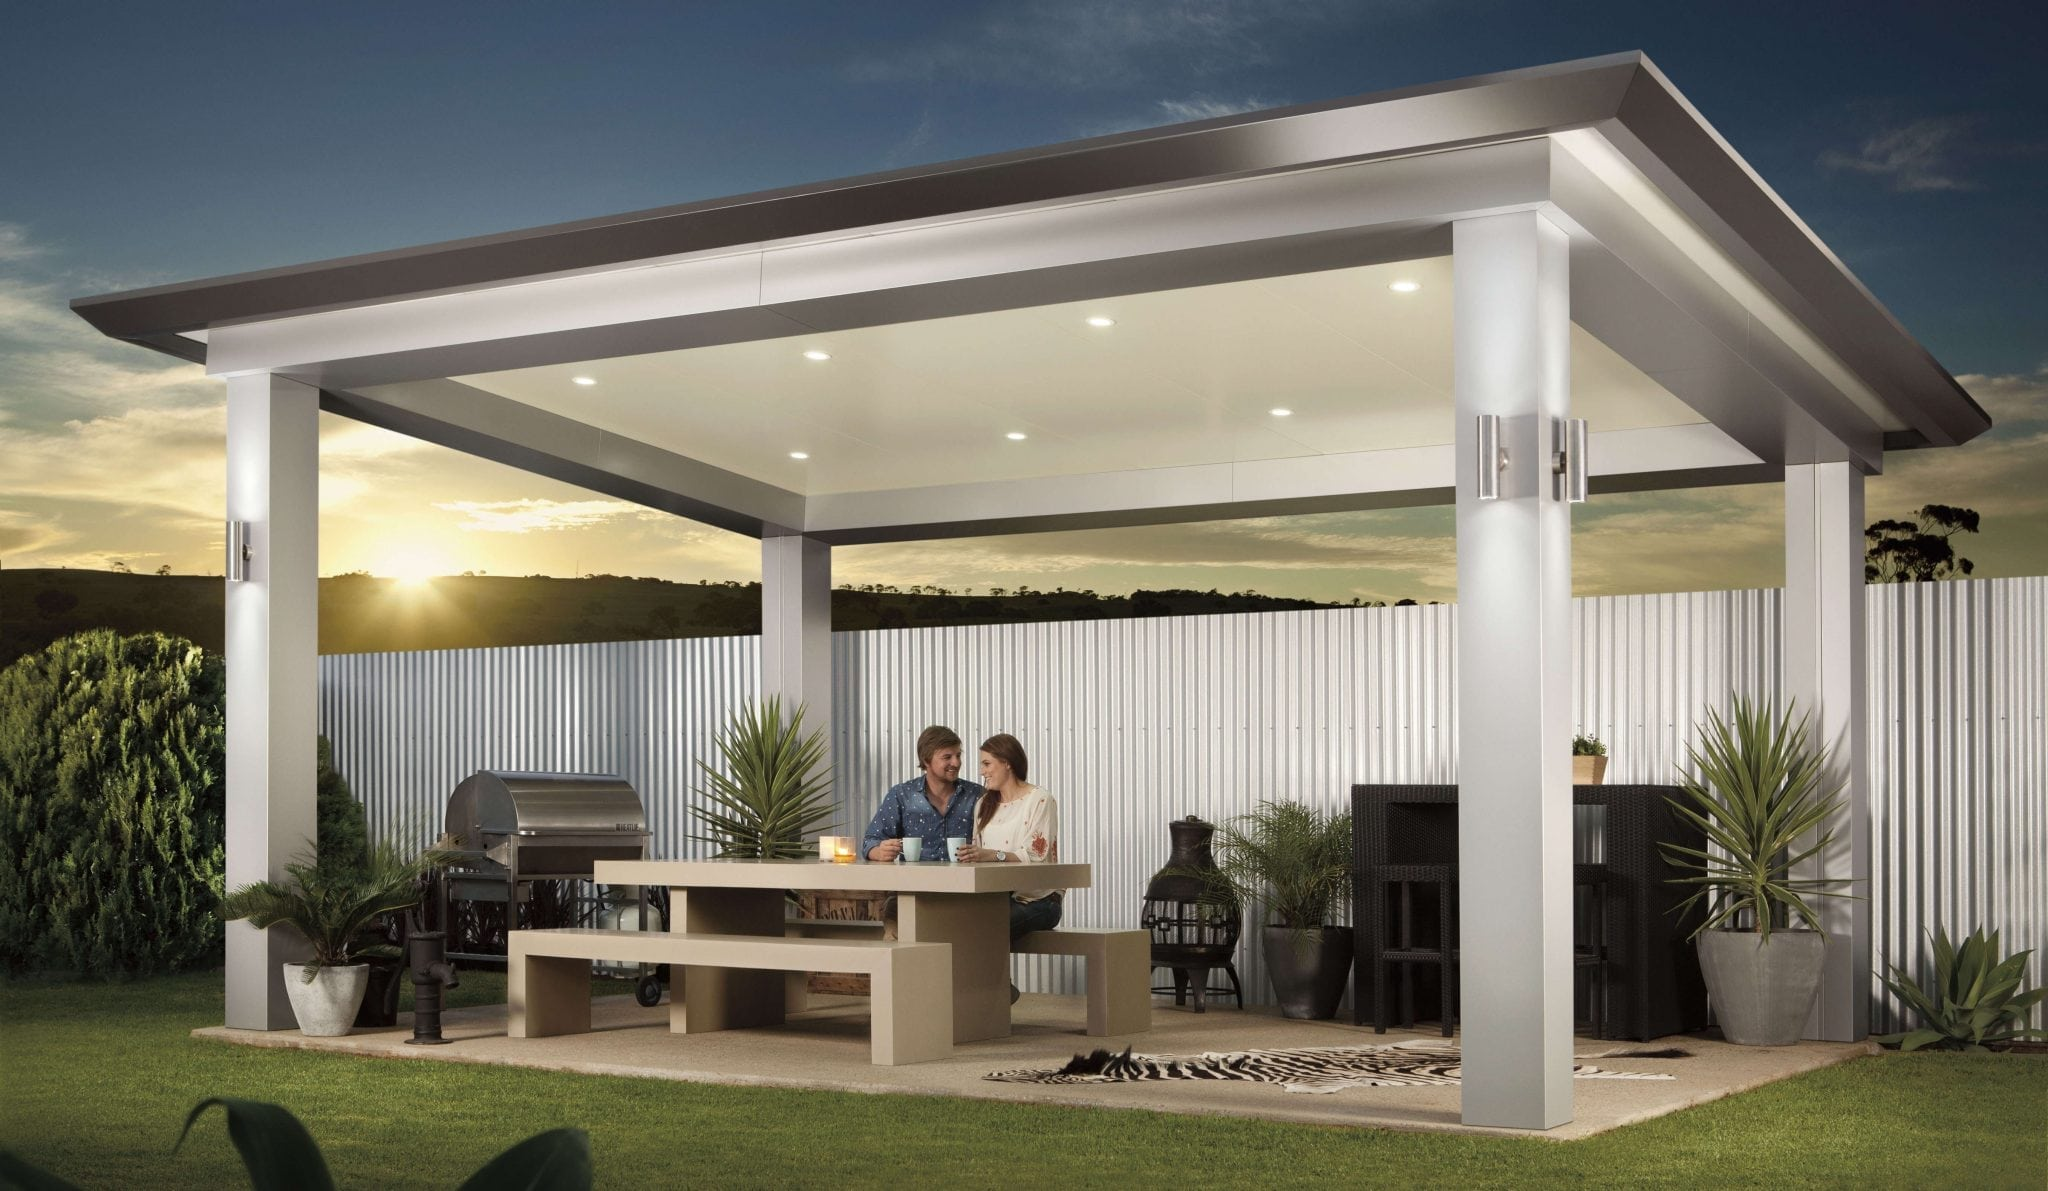 Stratco pavilion alfresco pergola for Average cost to build a pavilion